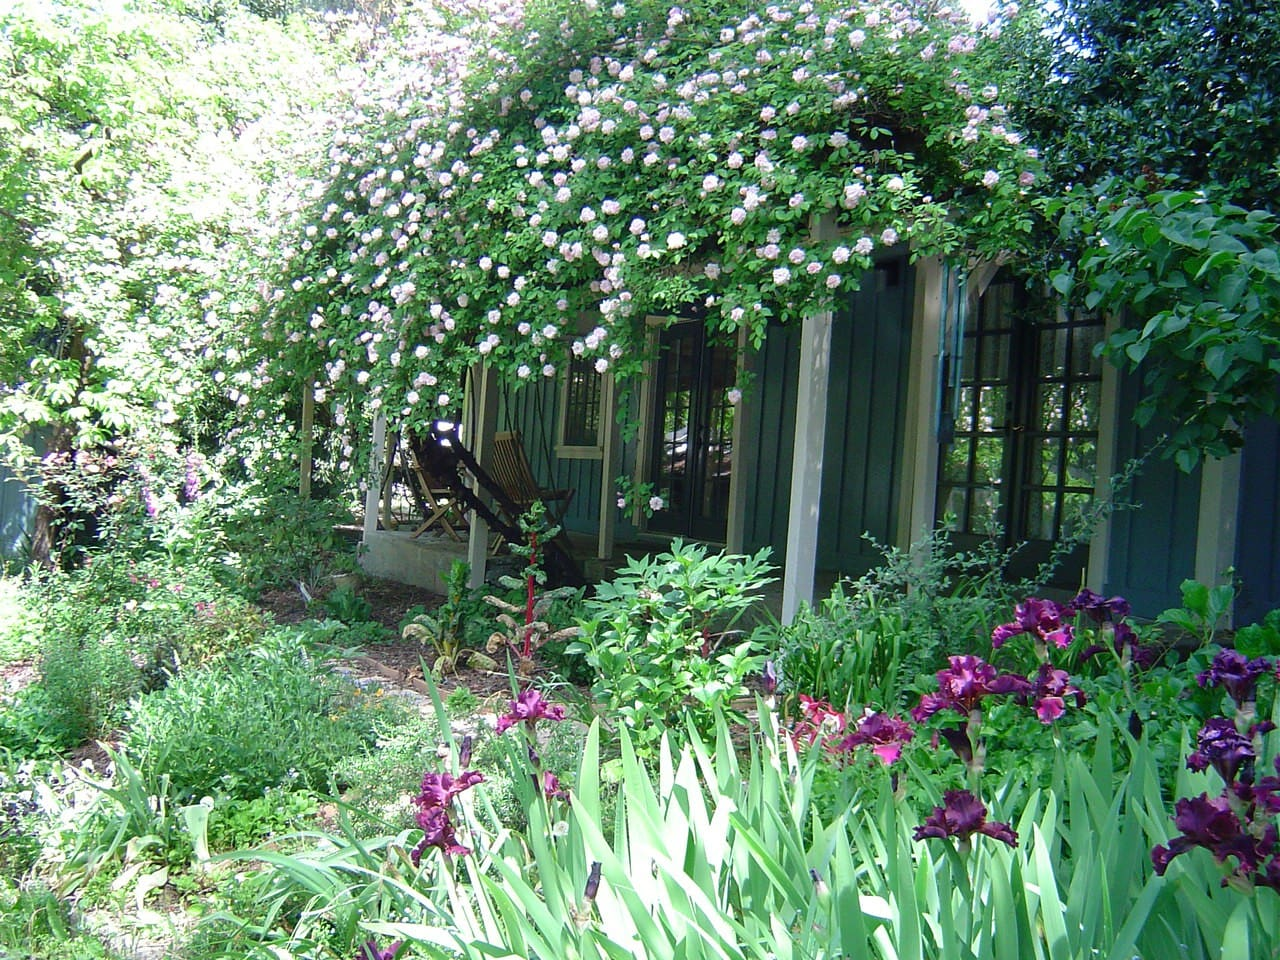 The Rose Cottage is really a rose covered Cottage in April as the two massive Cecil Bruner roses flower.